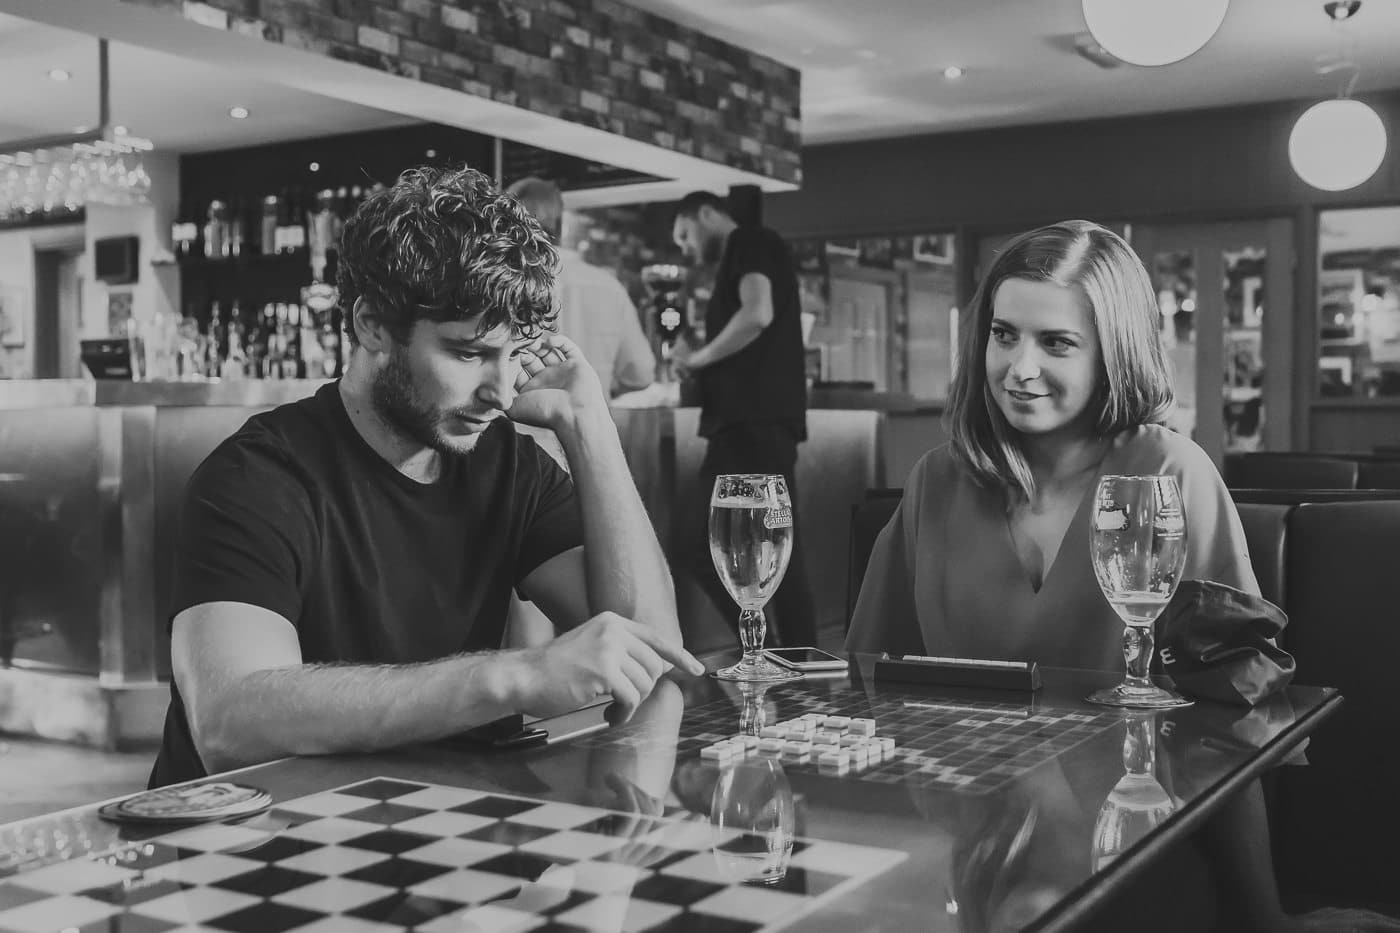 Two people sat at a table playing scrabble in a pub also drinking wine